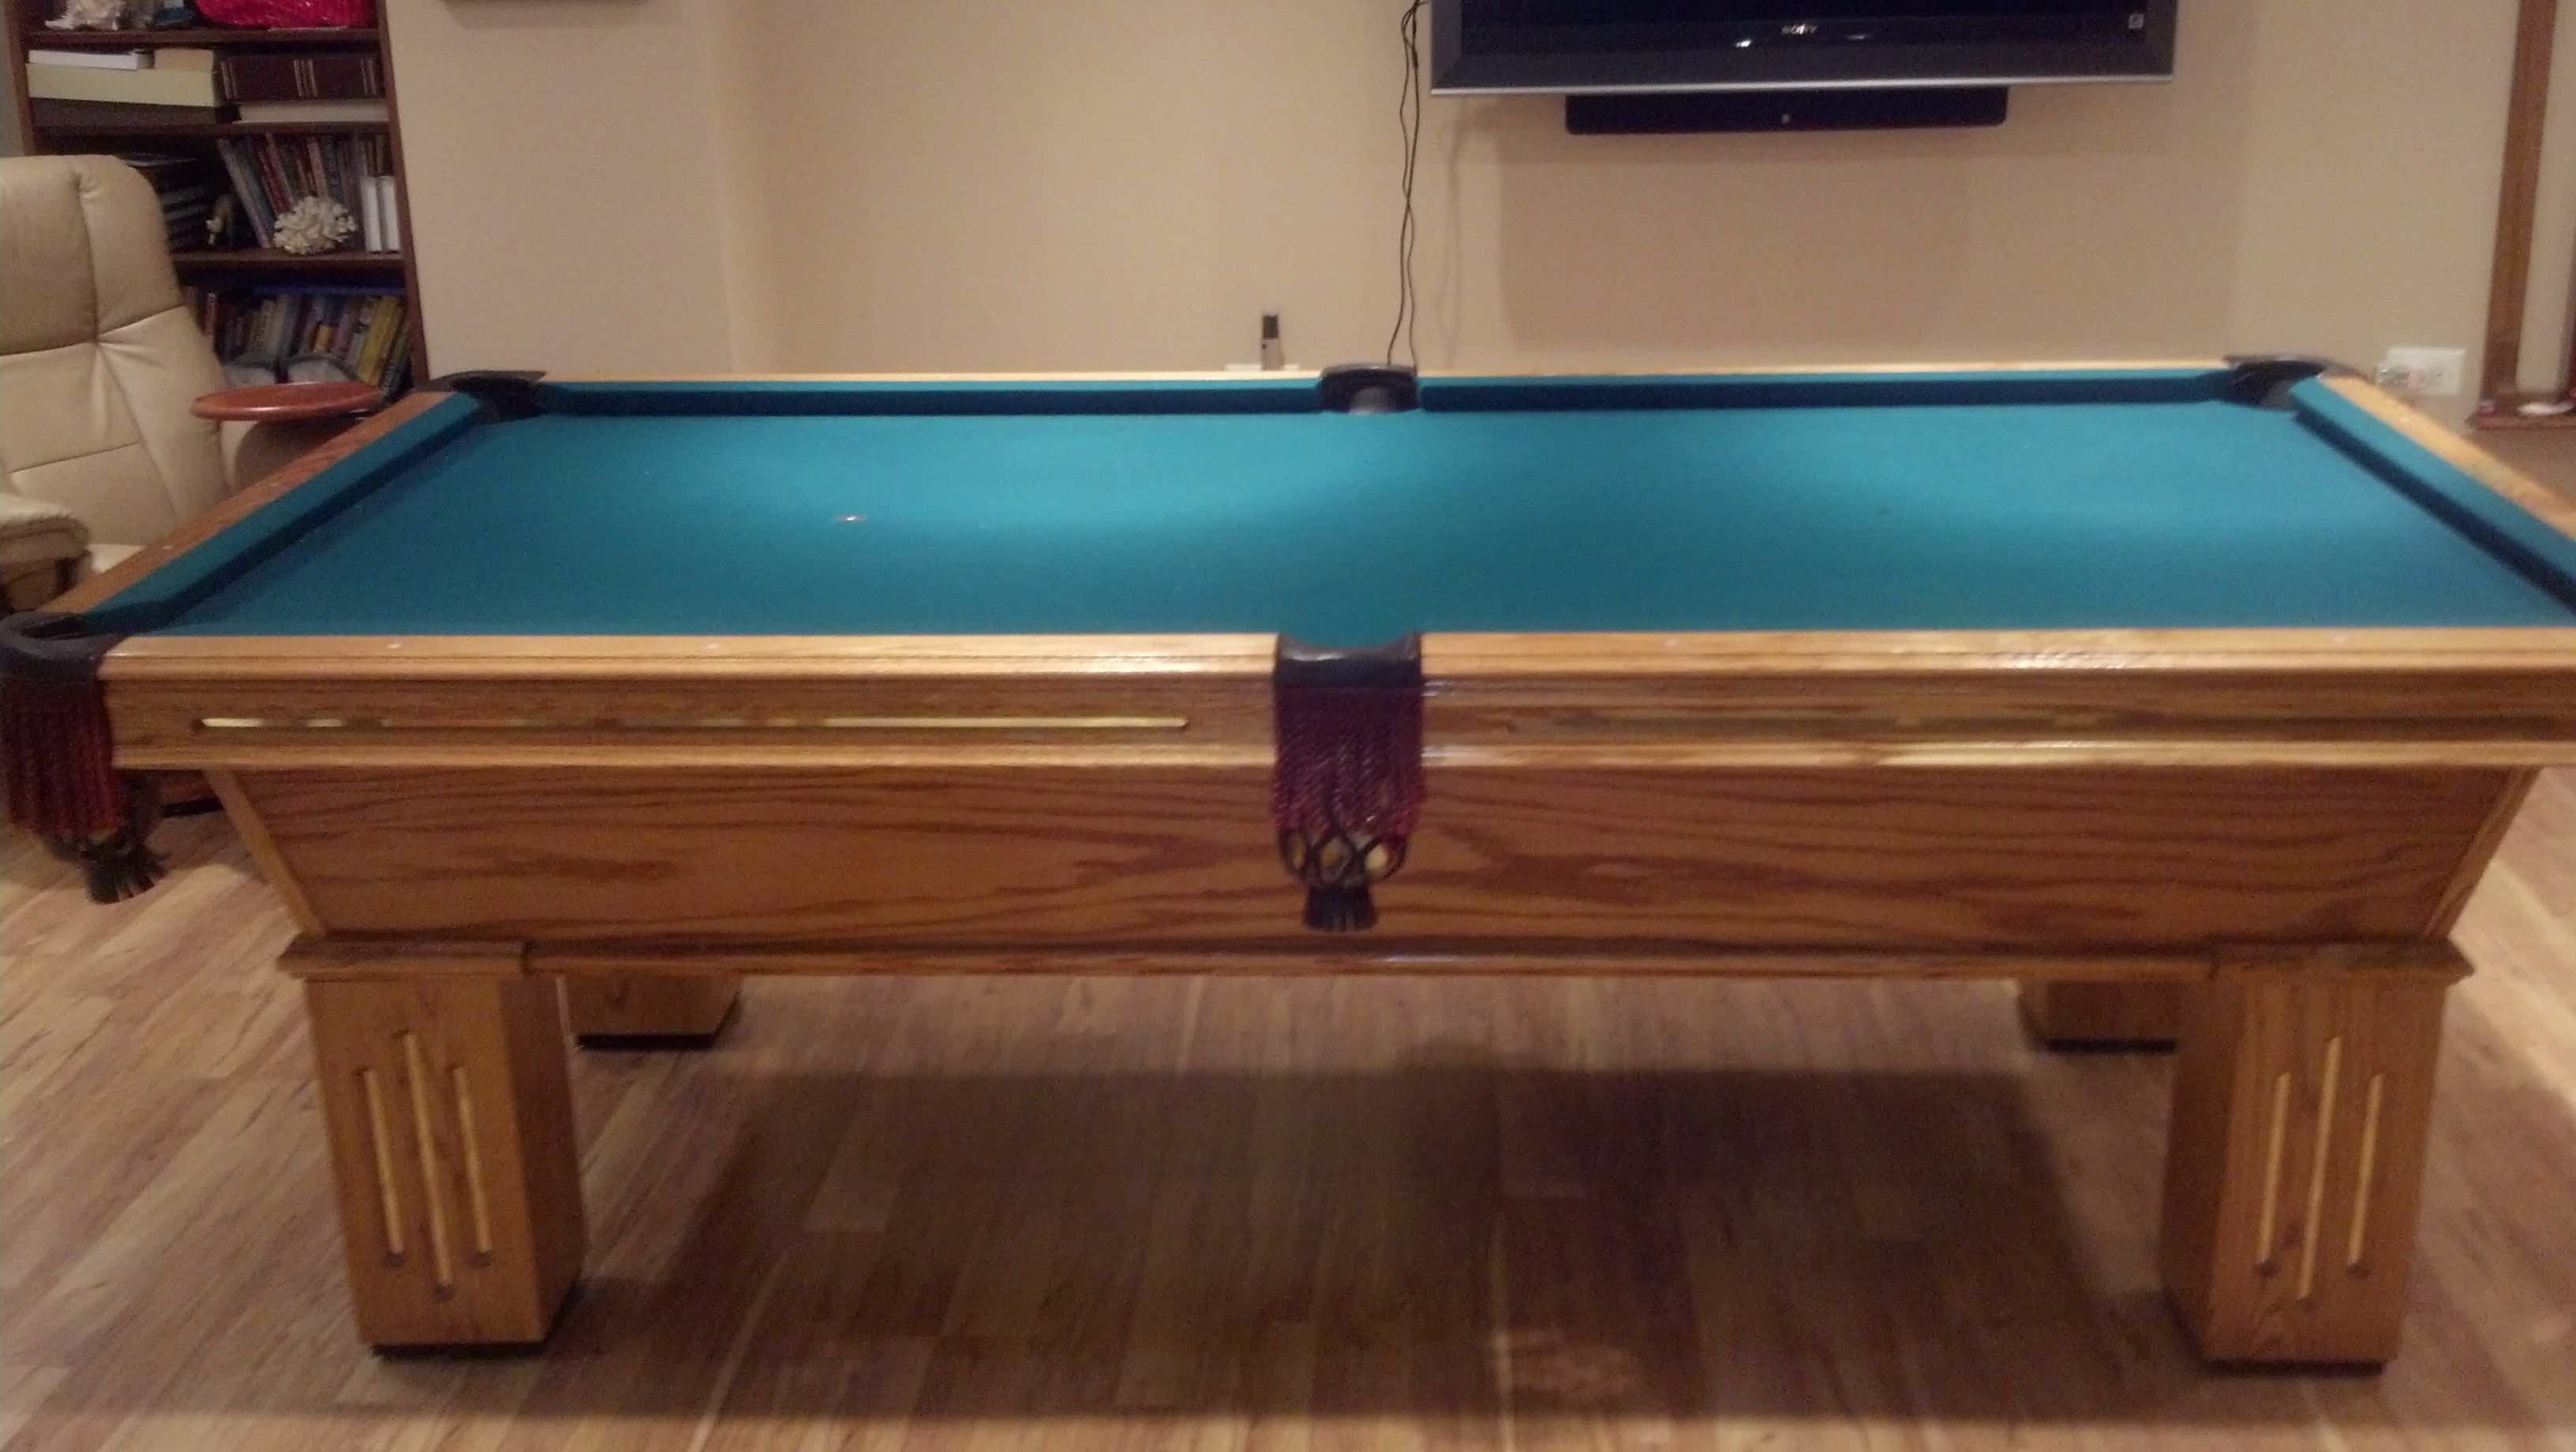 For sale Olhausen Billiards Gem 8' Pool Table Mint